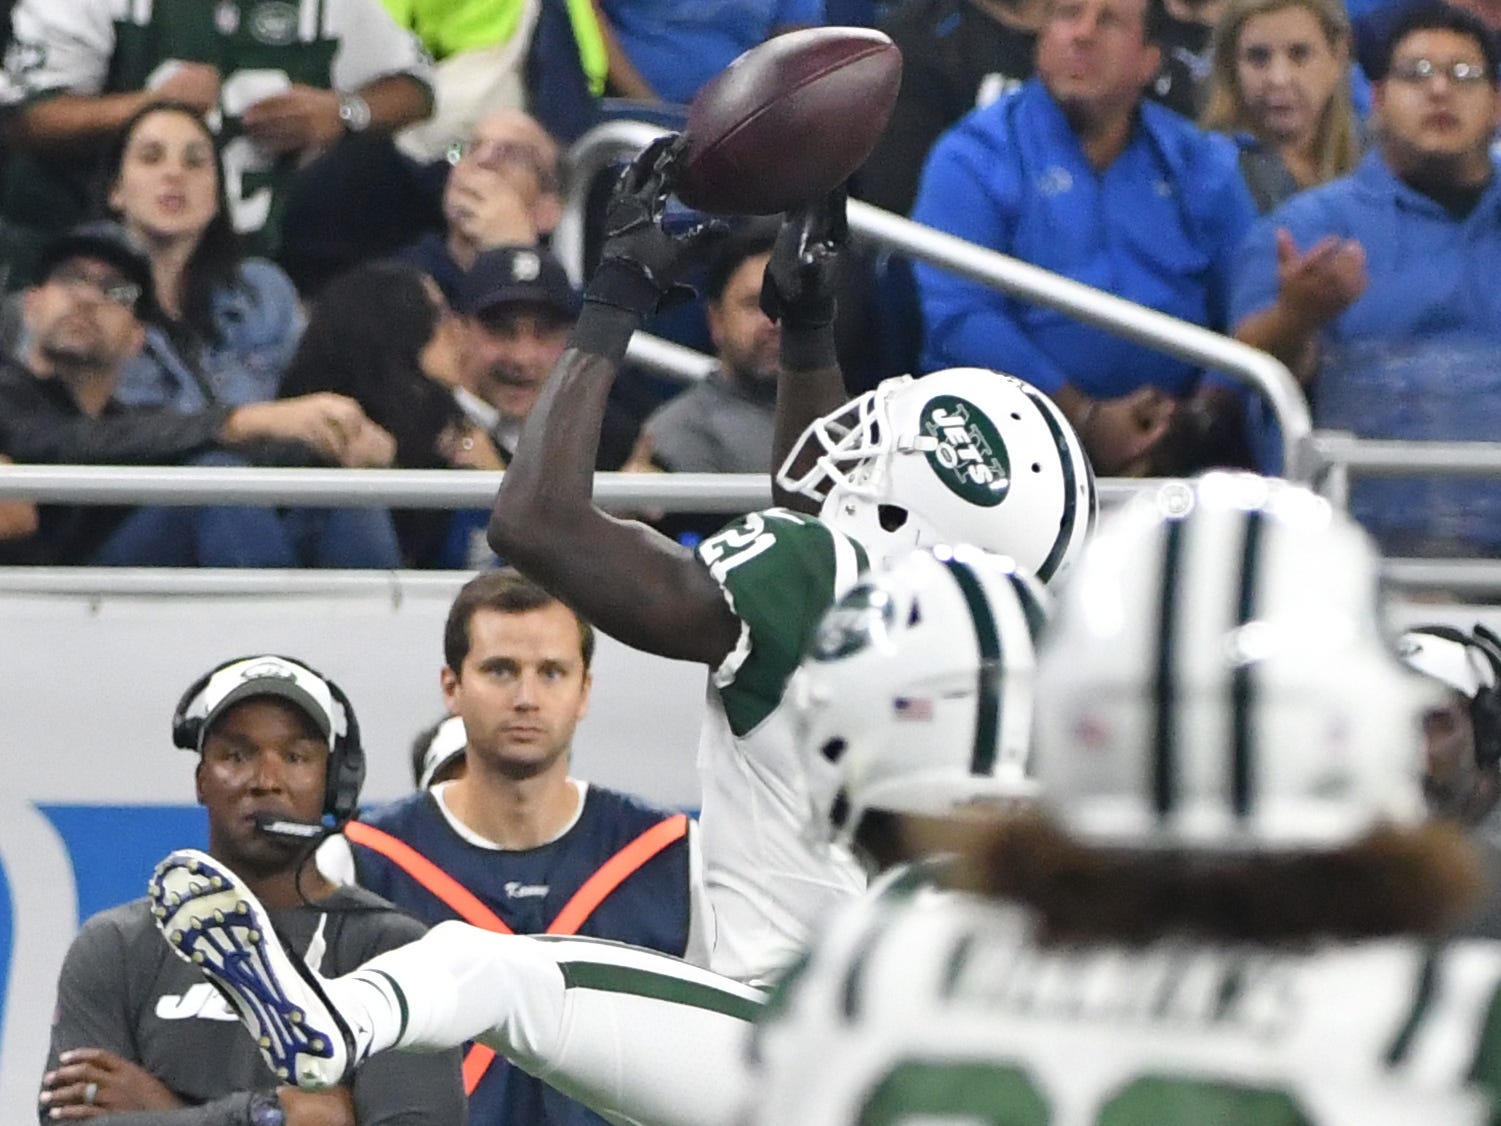 Jets' Morris Claiborne intercepts a pass intended for Lions' Marvin Jones Jr. in the first quarter.